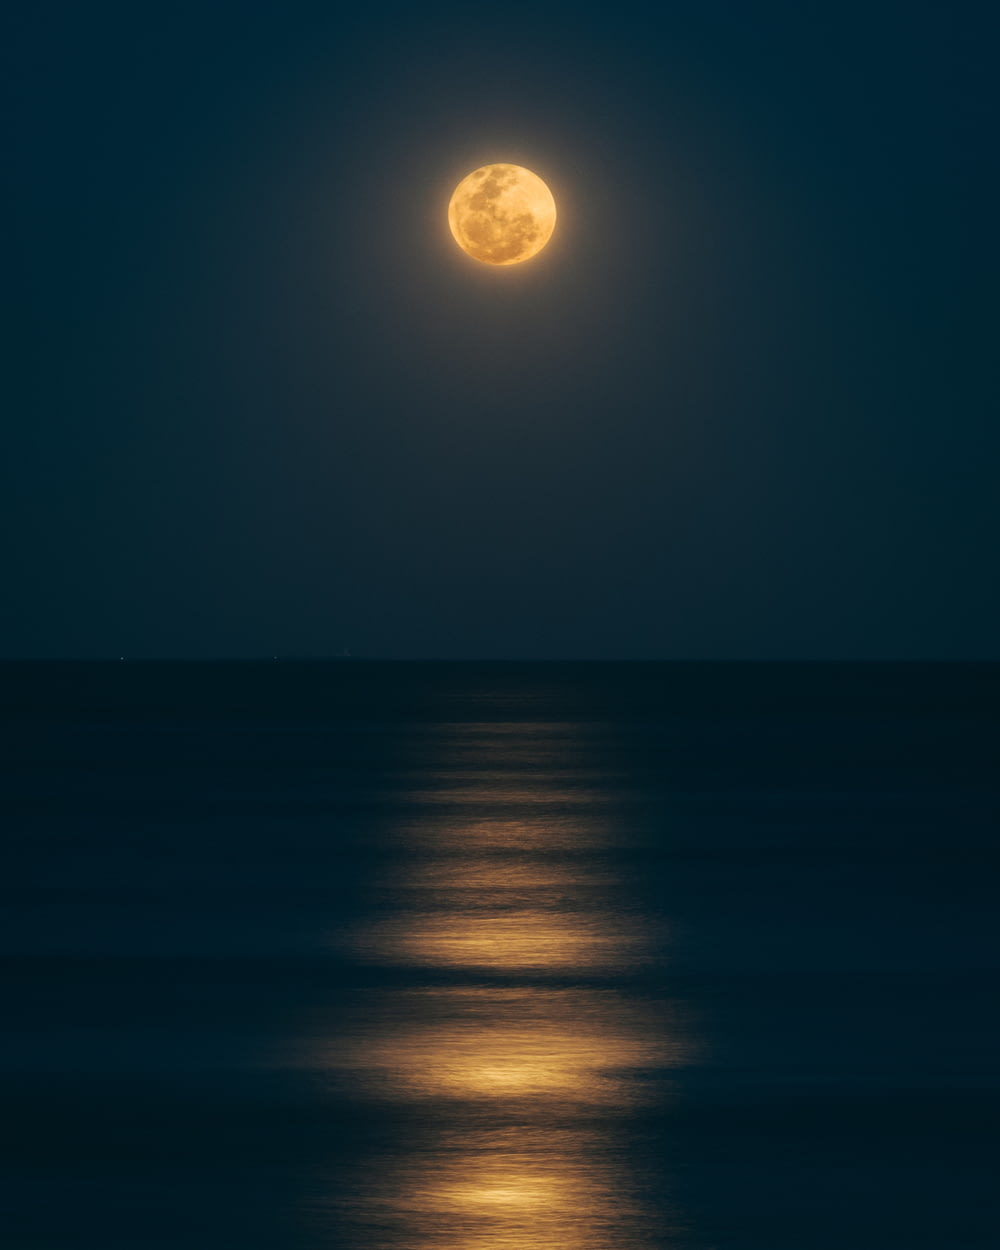 sea under full moon